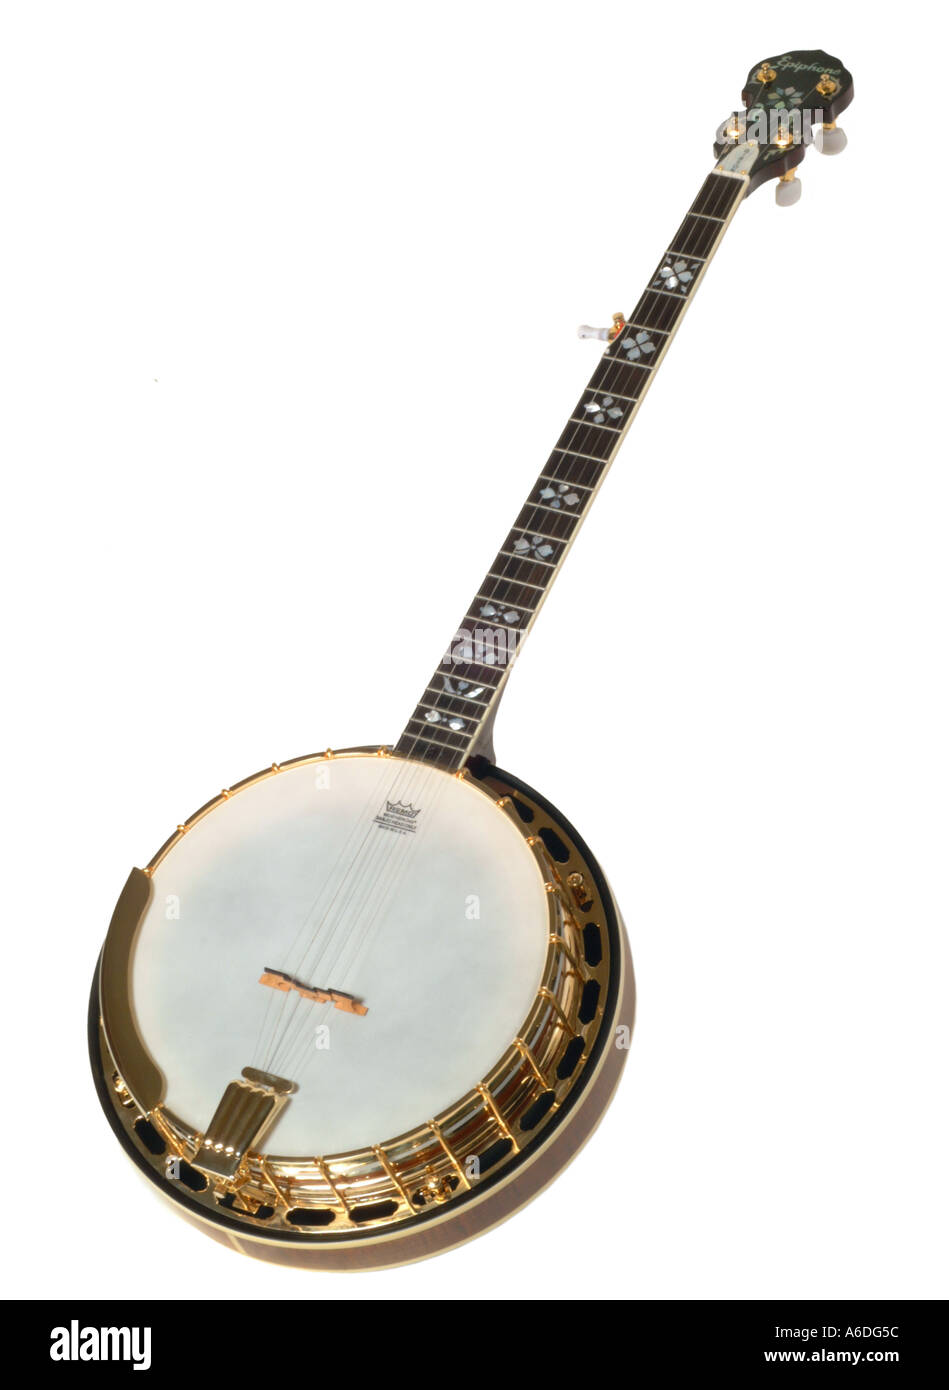 epiphone gibson banjo 5 string  studio cutout cut out white background knockout dropout - Stock Image